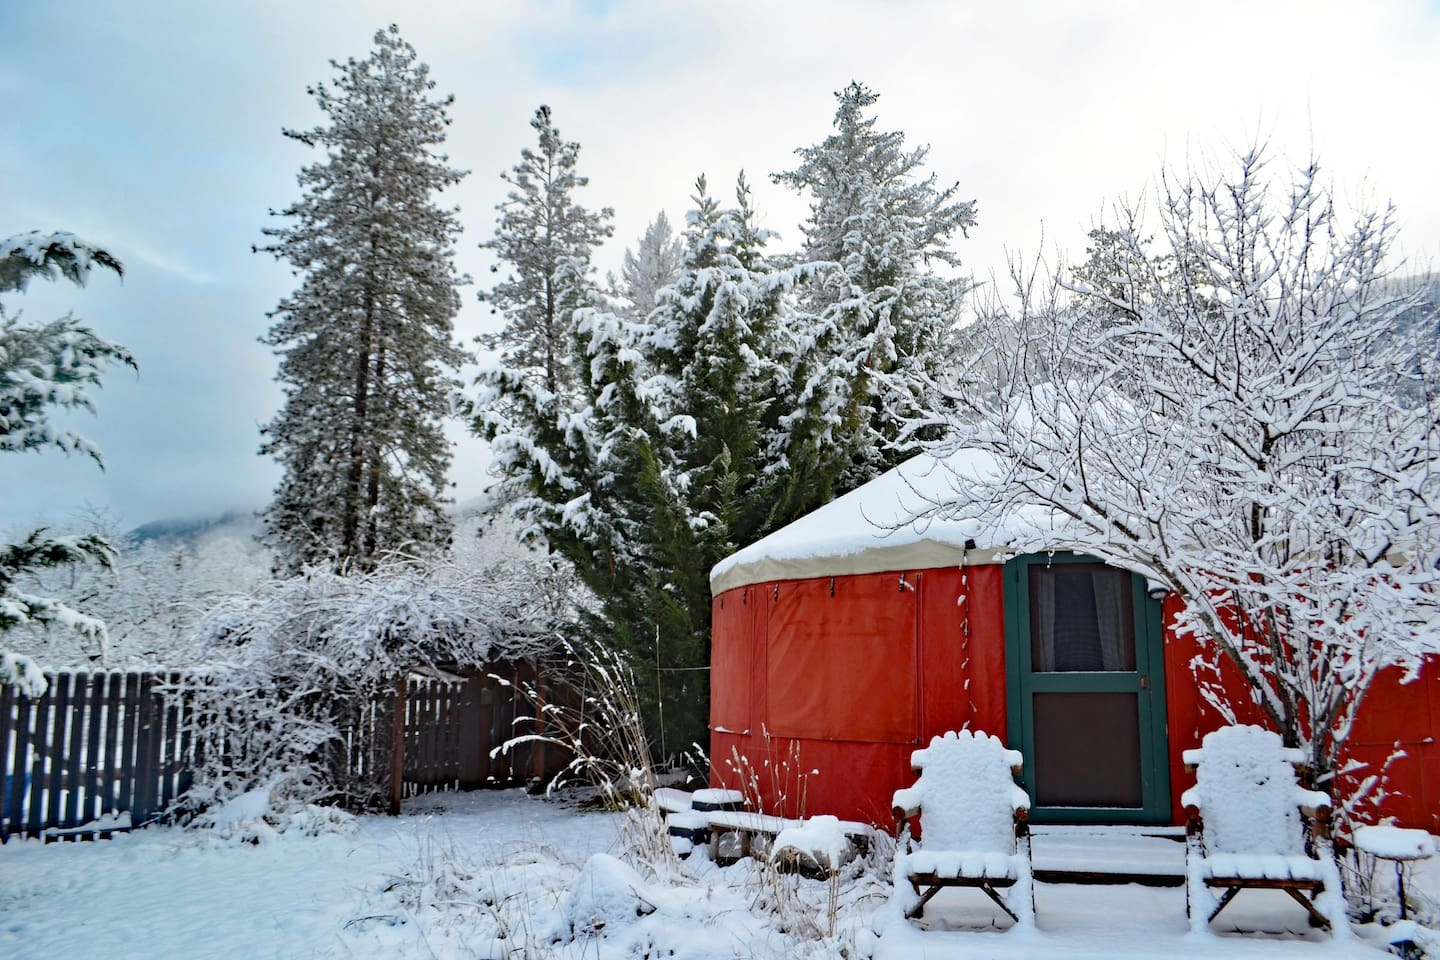 The average cost to stay in this yurt is $82